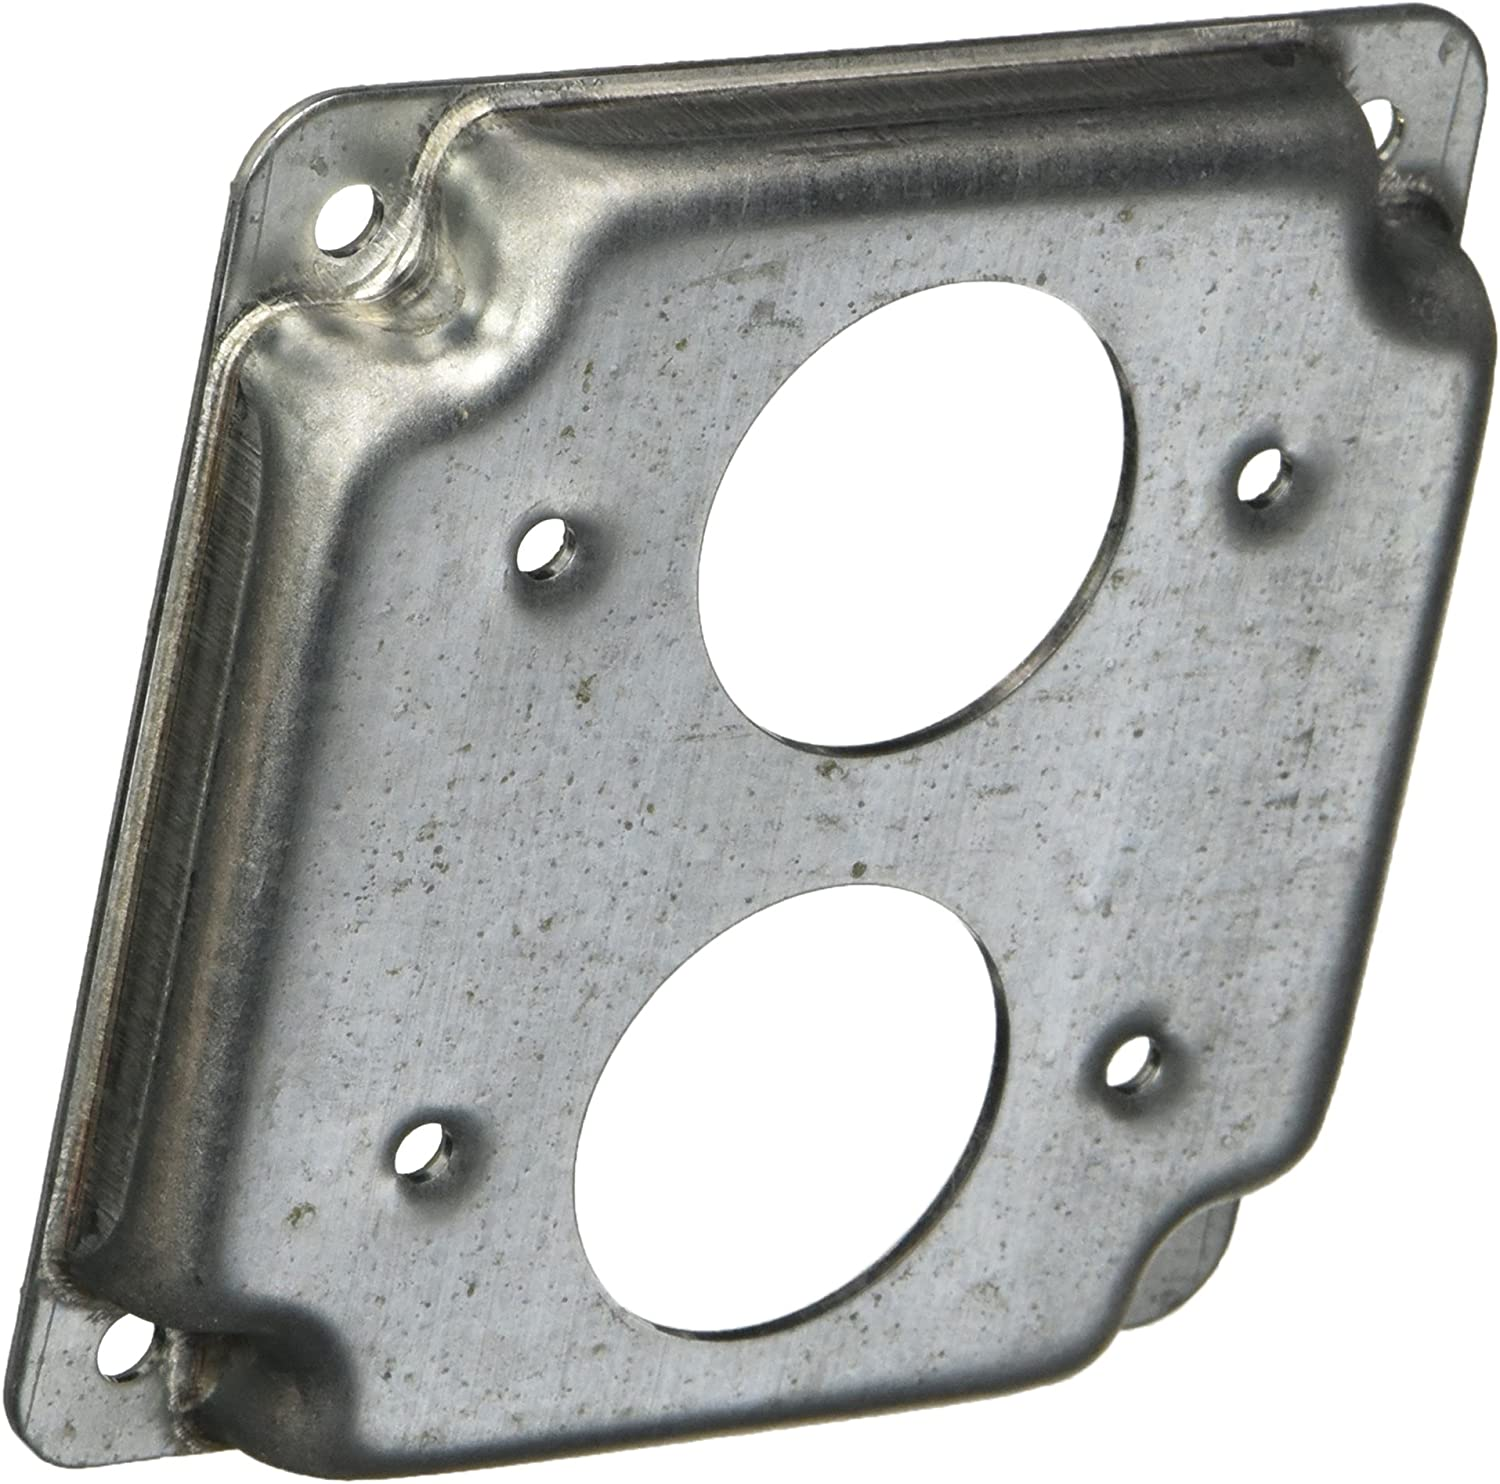 1.41-Inch Diameter Receptacle and Crushed Corner 4-Inch Duplex, Hubbell-Raco 806C 1//2-Inch Raised Square Cover with 1 1